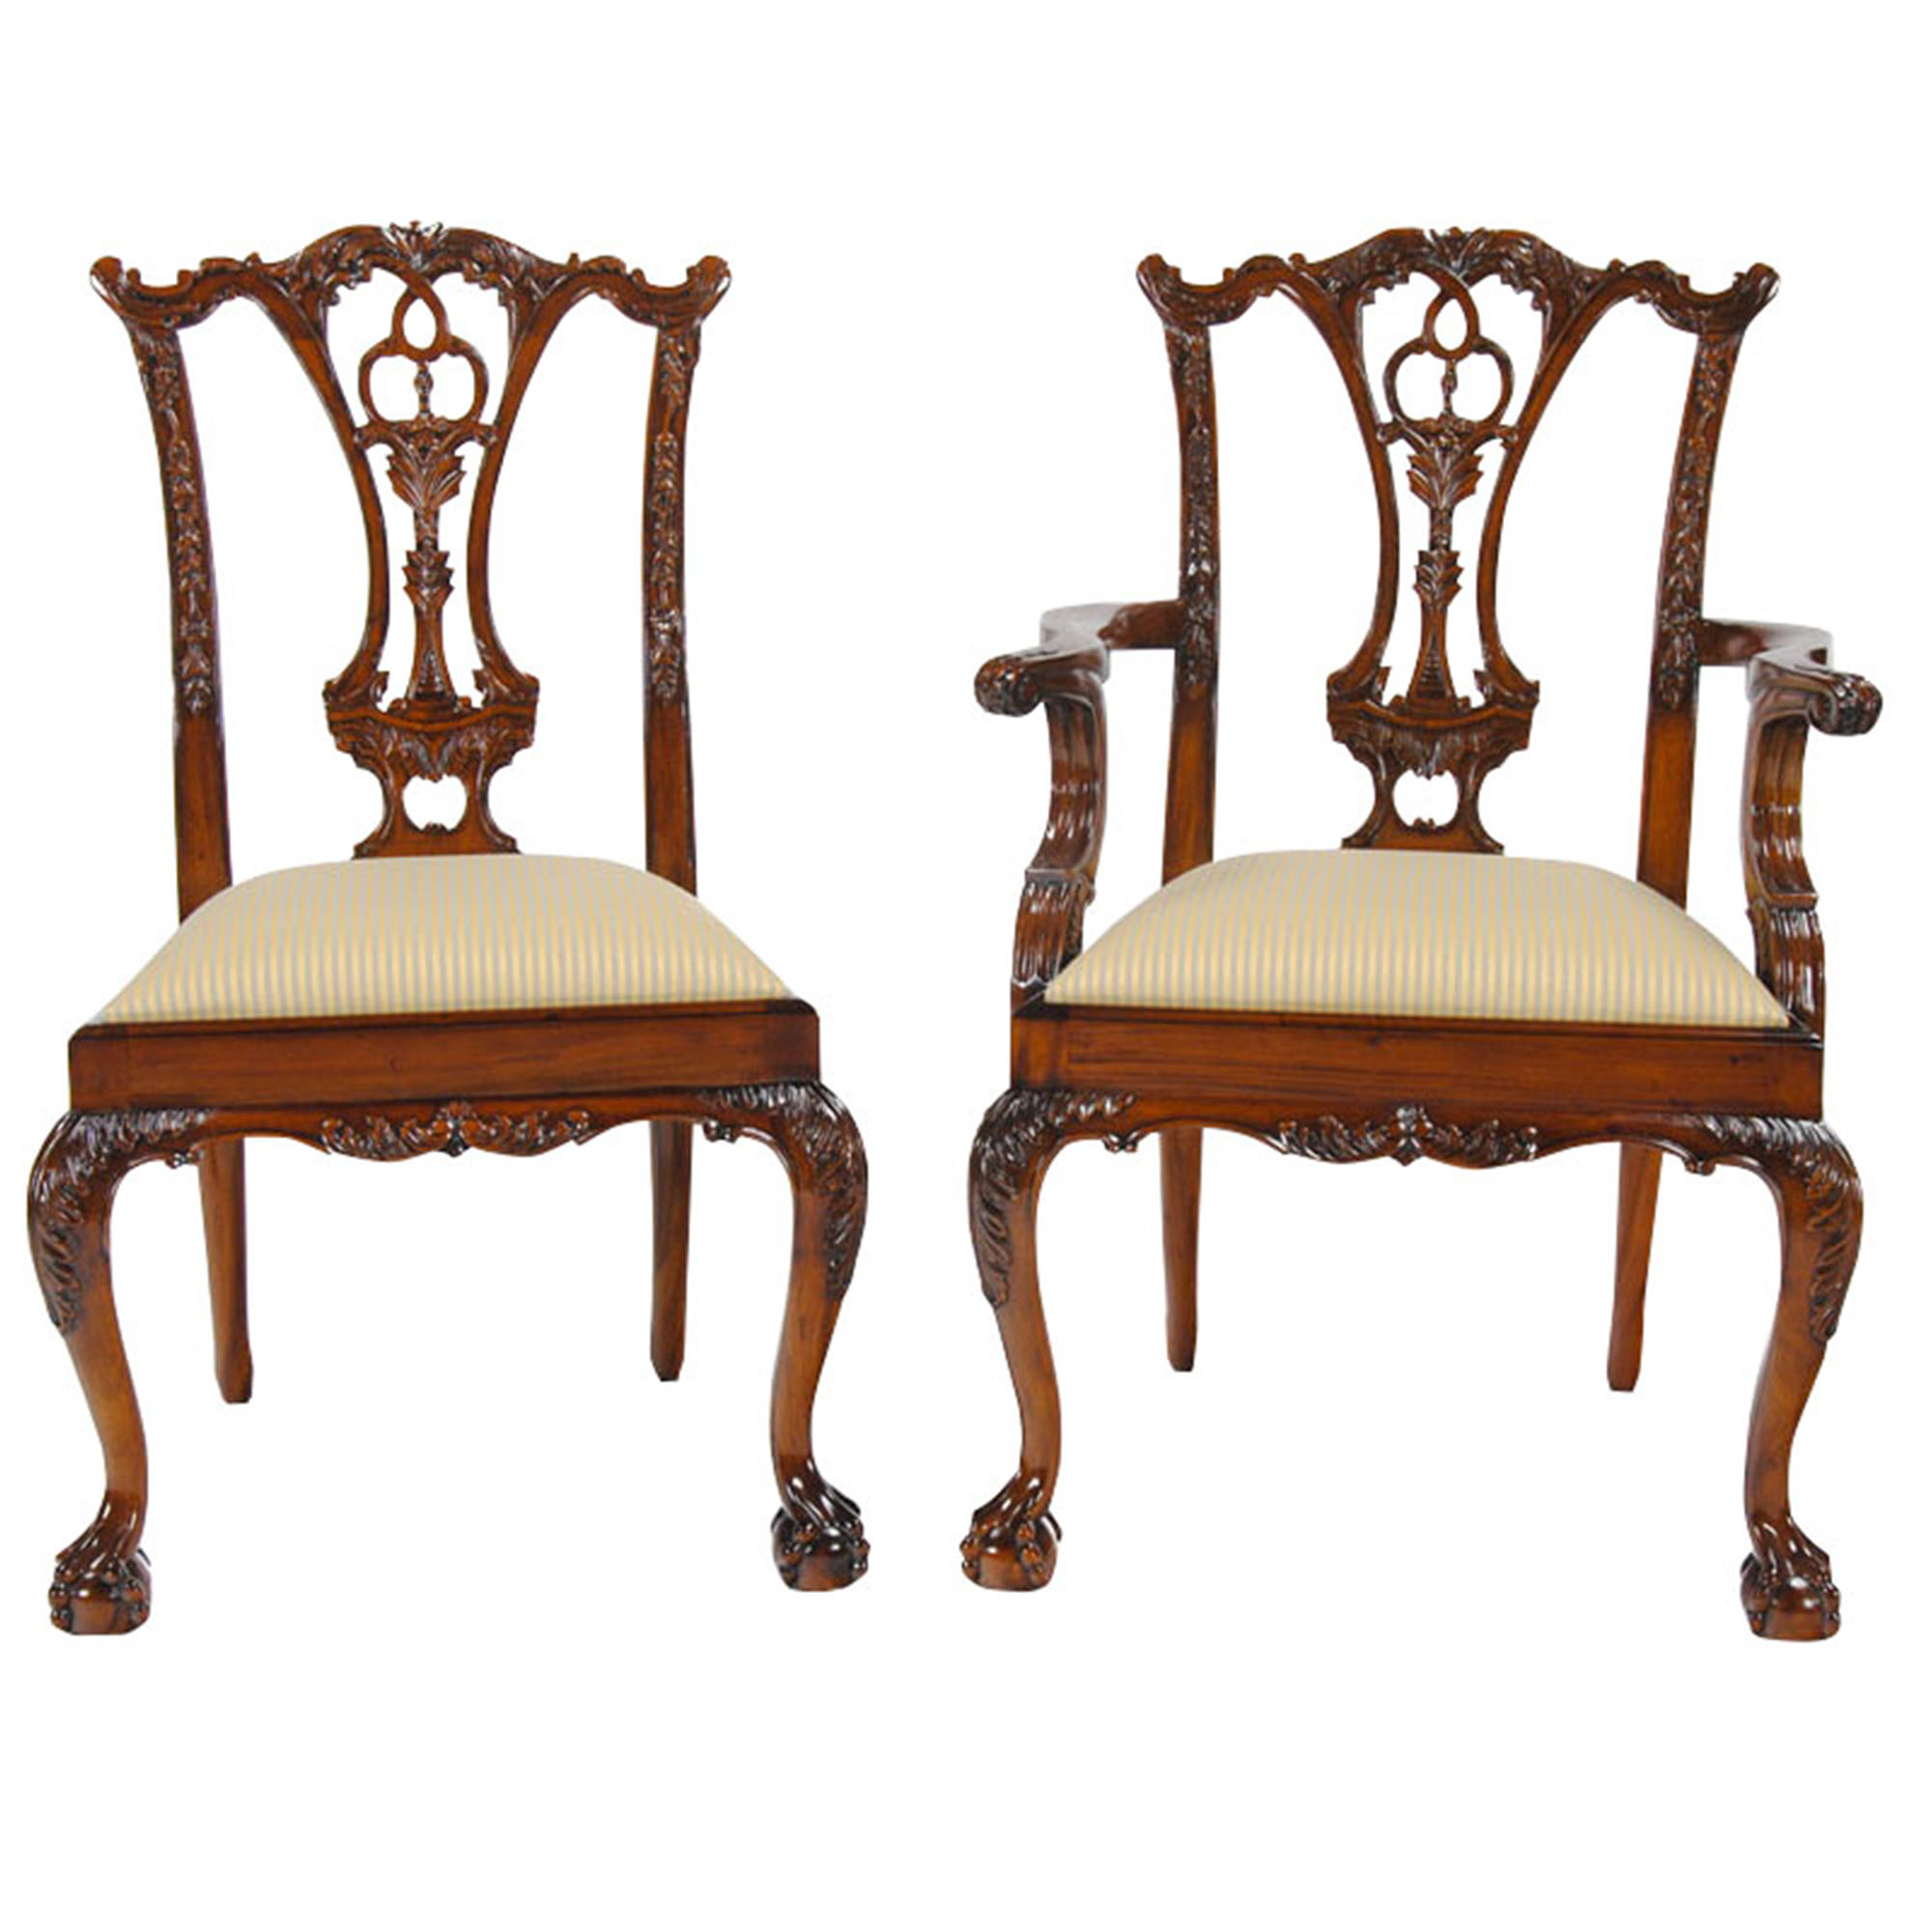 Chippendale Furniture: Standard Chippendale Chairs, Set Of Ten, Niagara Furniture